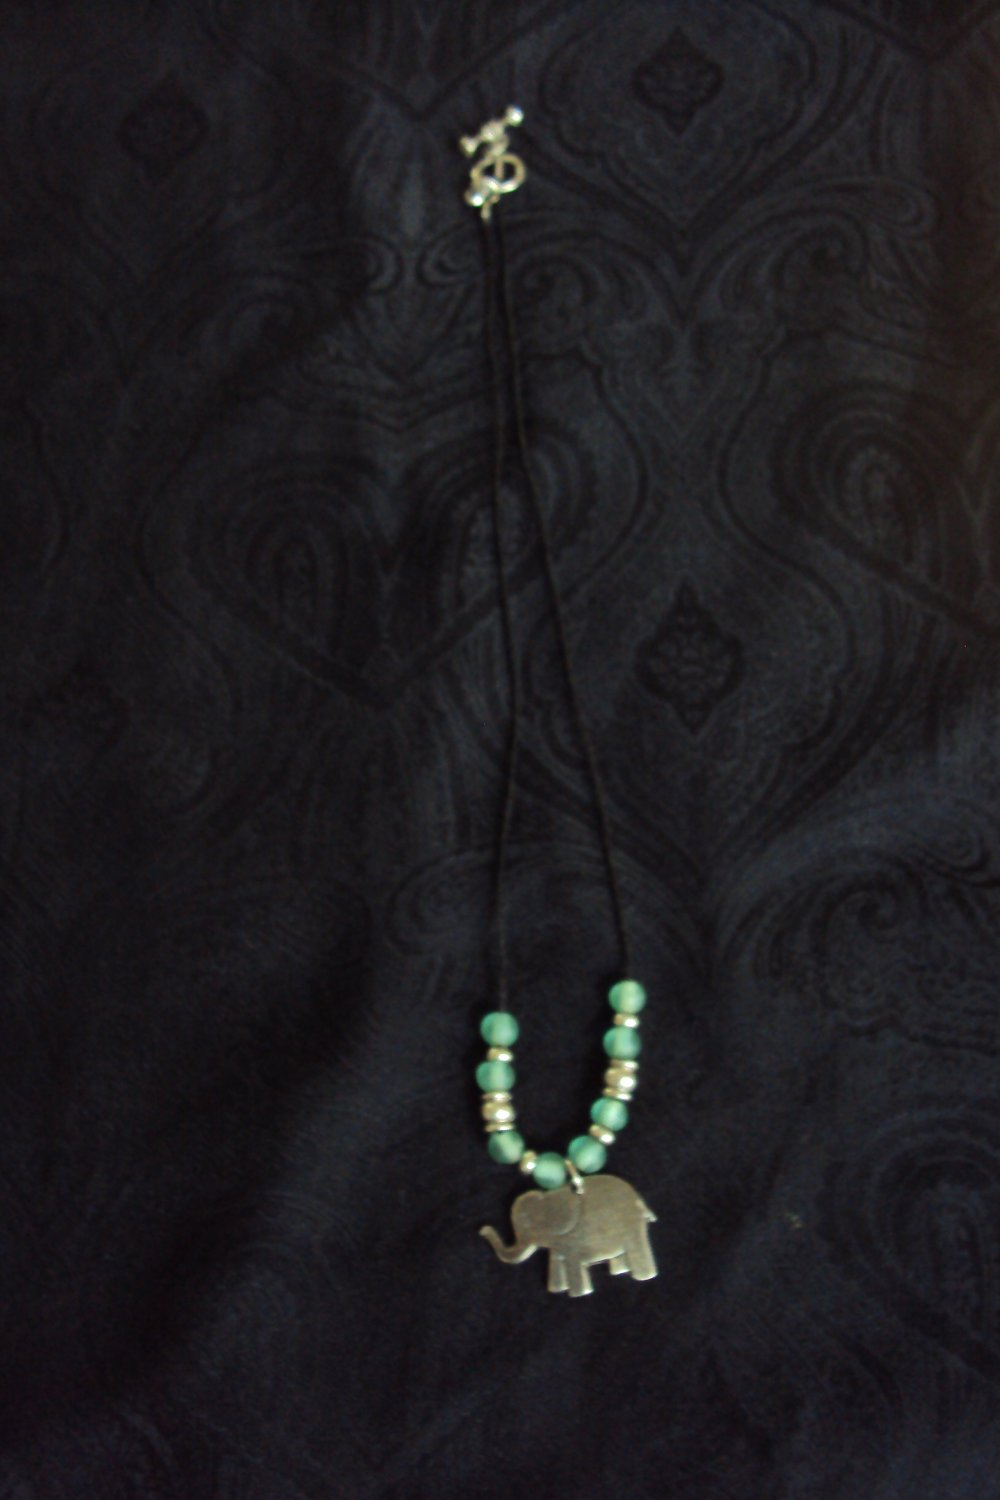 Elephant necklace with beads